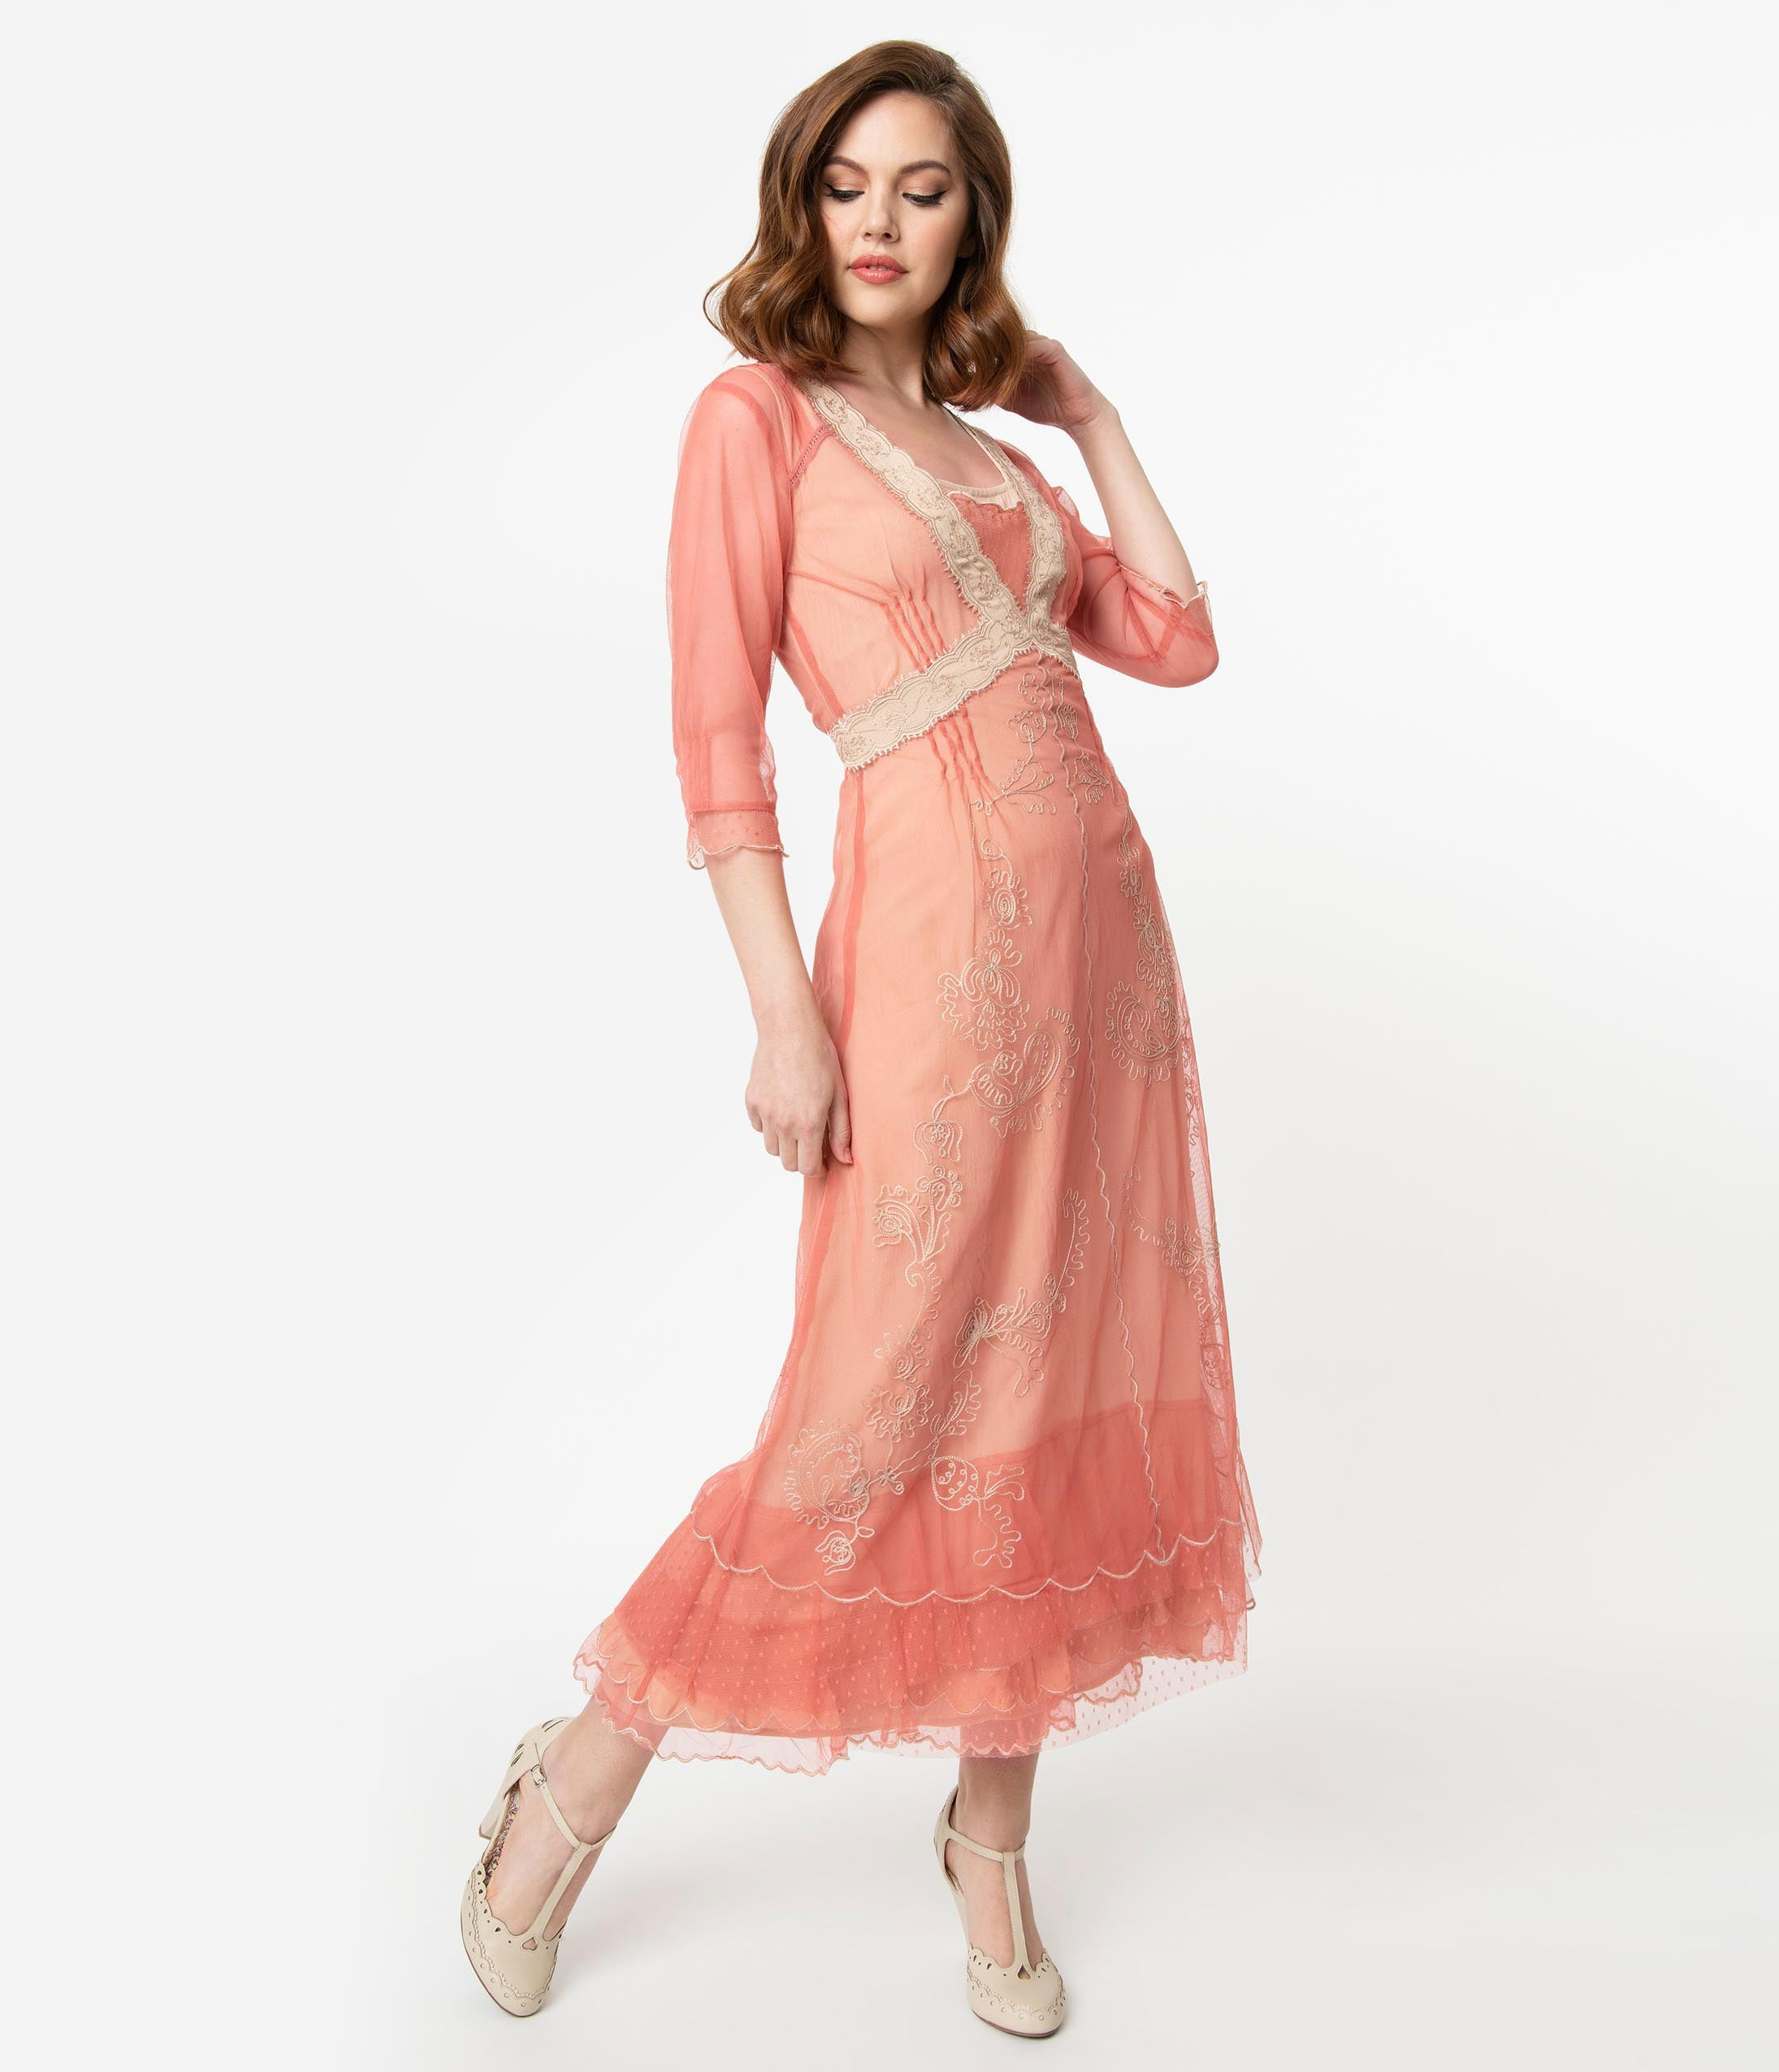 Old Fashioned Dresses | Old Dress Styles Vintage Style Rose Pink Mesh  Beige Embroidered Edwardian Flapper Dress $302.00 AT vintagedancer.com